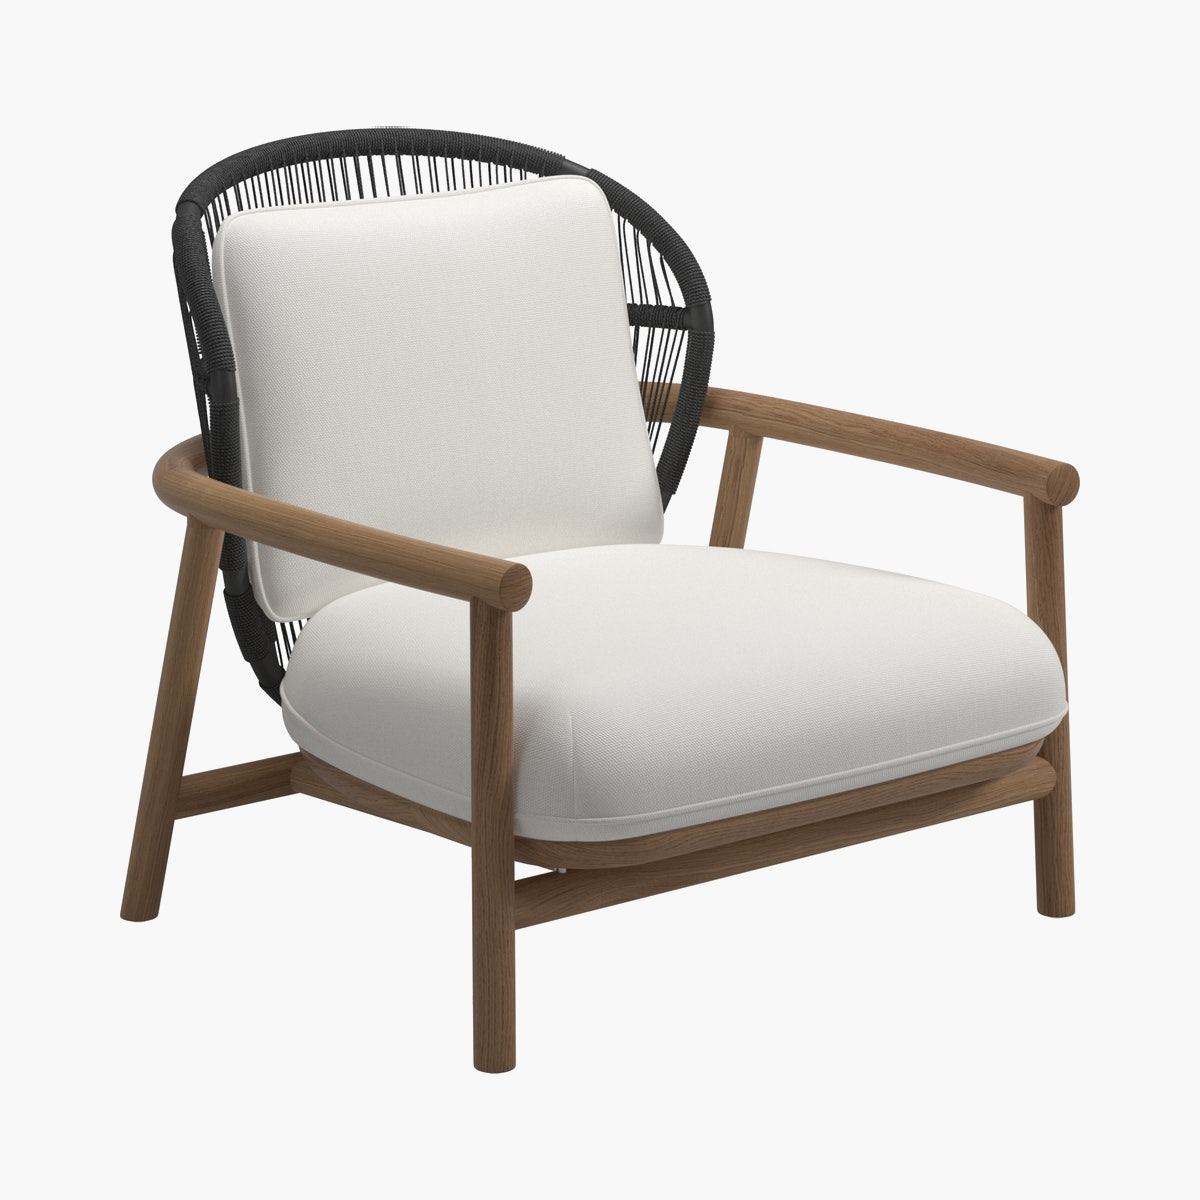 Fern Lounge Chair